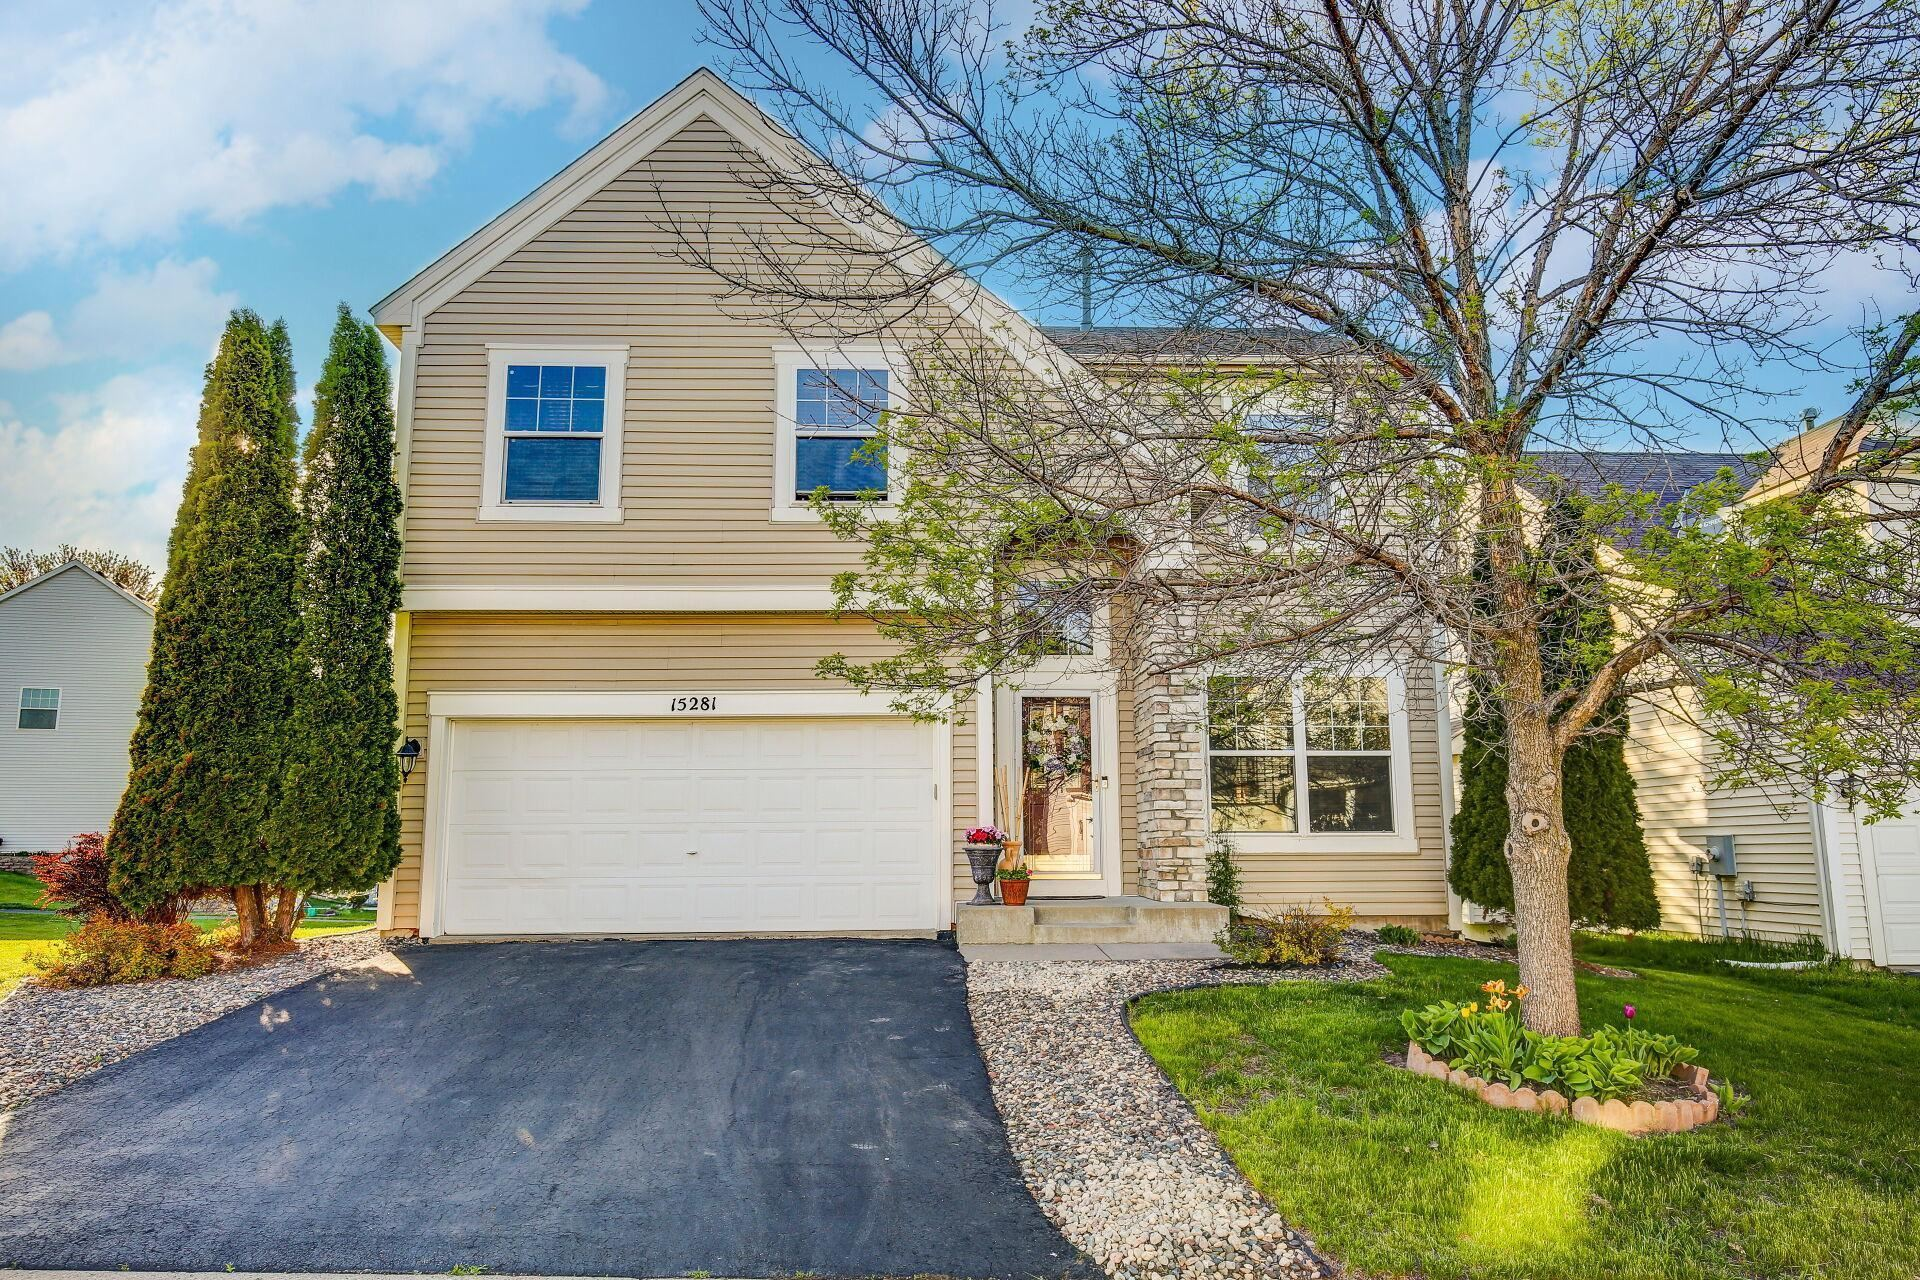 Photo of 15281 Dupont Path, Apple Valley, MN 55124 (MLS # 5757593)